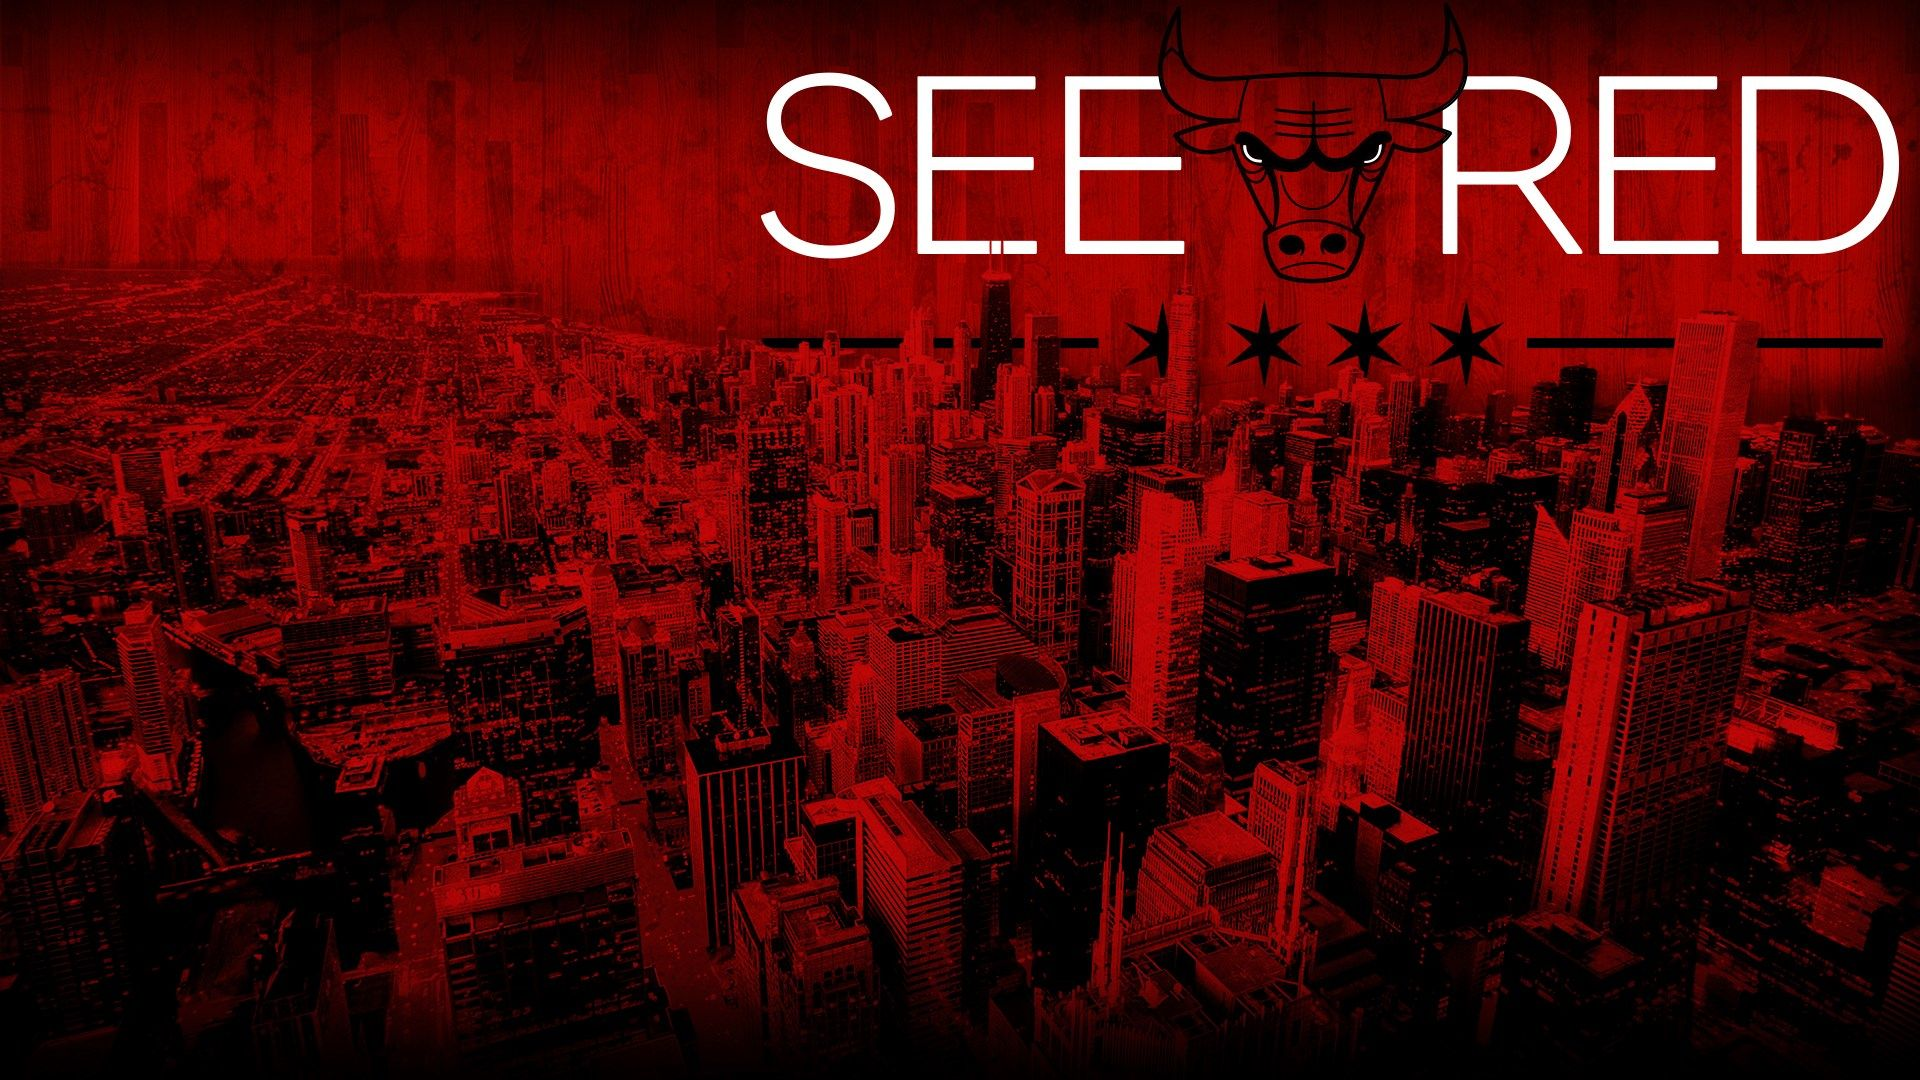 Chicago Bulls Best Wallpapers Free Chicago Bulls Wallpaper Bulls Wallpaper Chicago Bulls